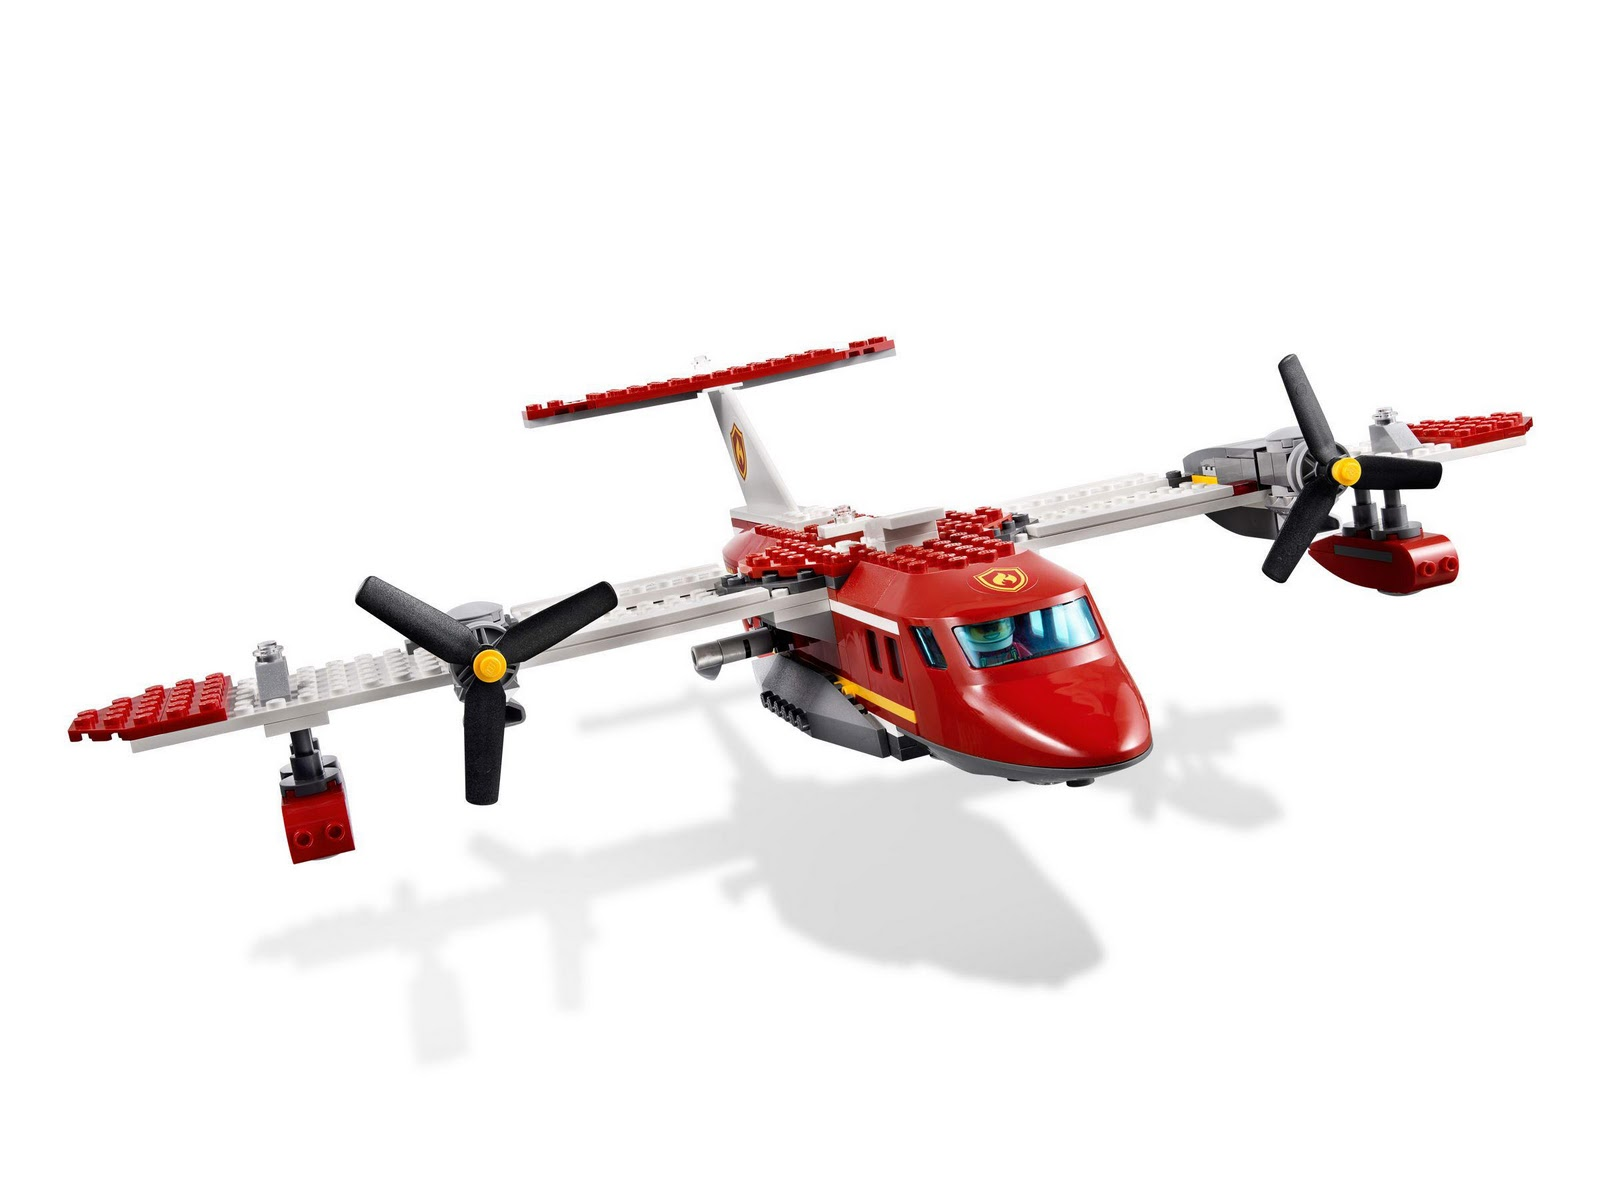 helicopter stunt with Set Database Lego 4209 Fire Plane on Soldier Battlefield 4 Hd 1494 moreover History Of Paper Airplanes as well News furthermore Smallest Airplanes In The World in addition Airplane 30.